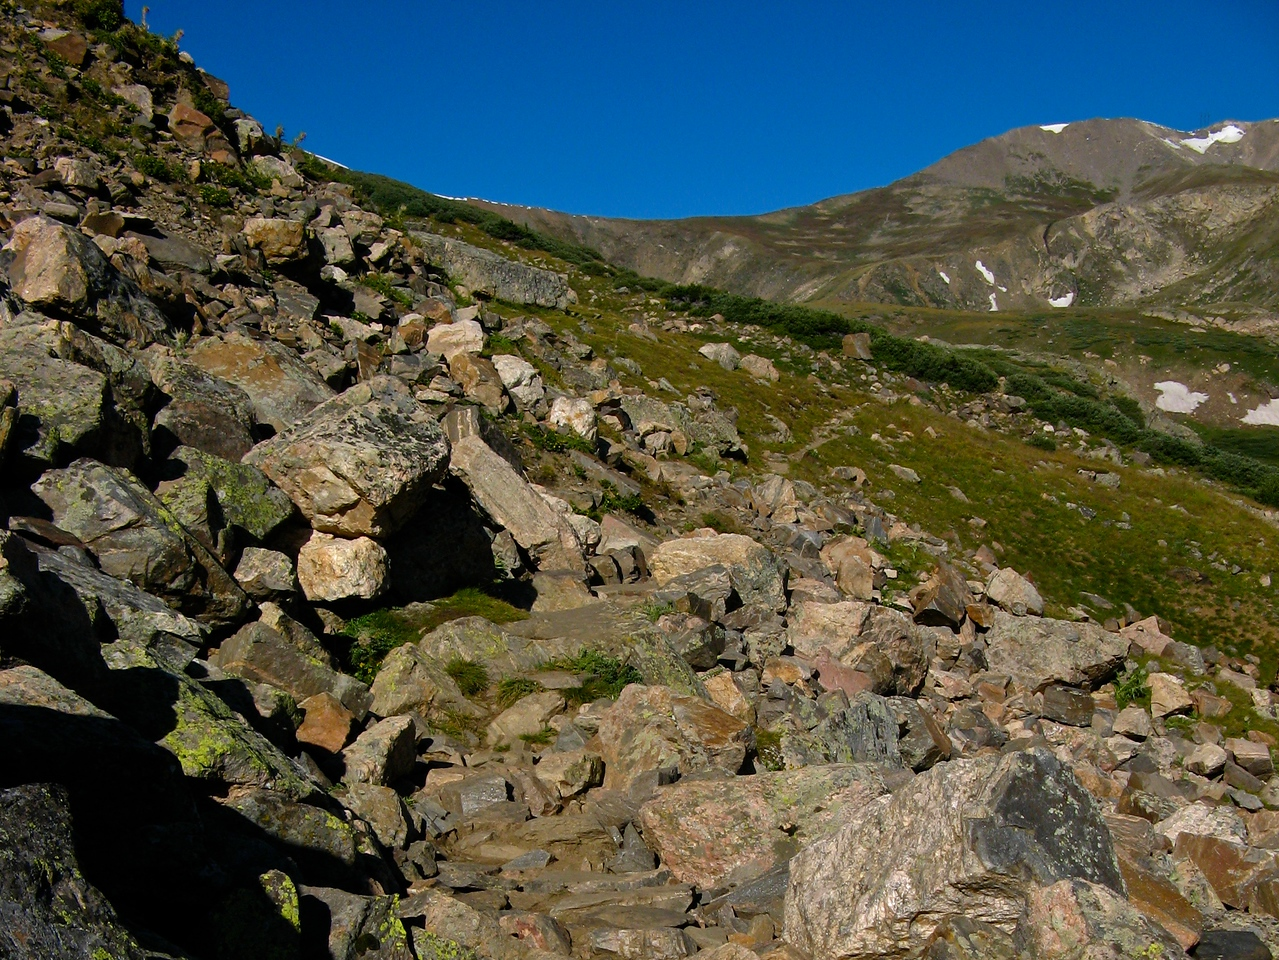 For a short distance, you'll actually have to traverse some rocks before getting back to a marked trail.